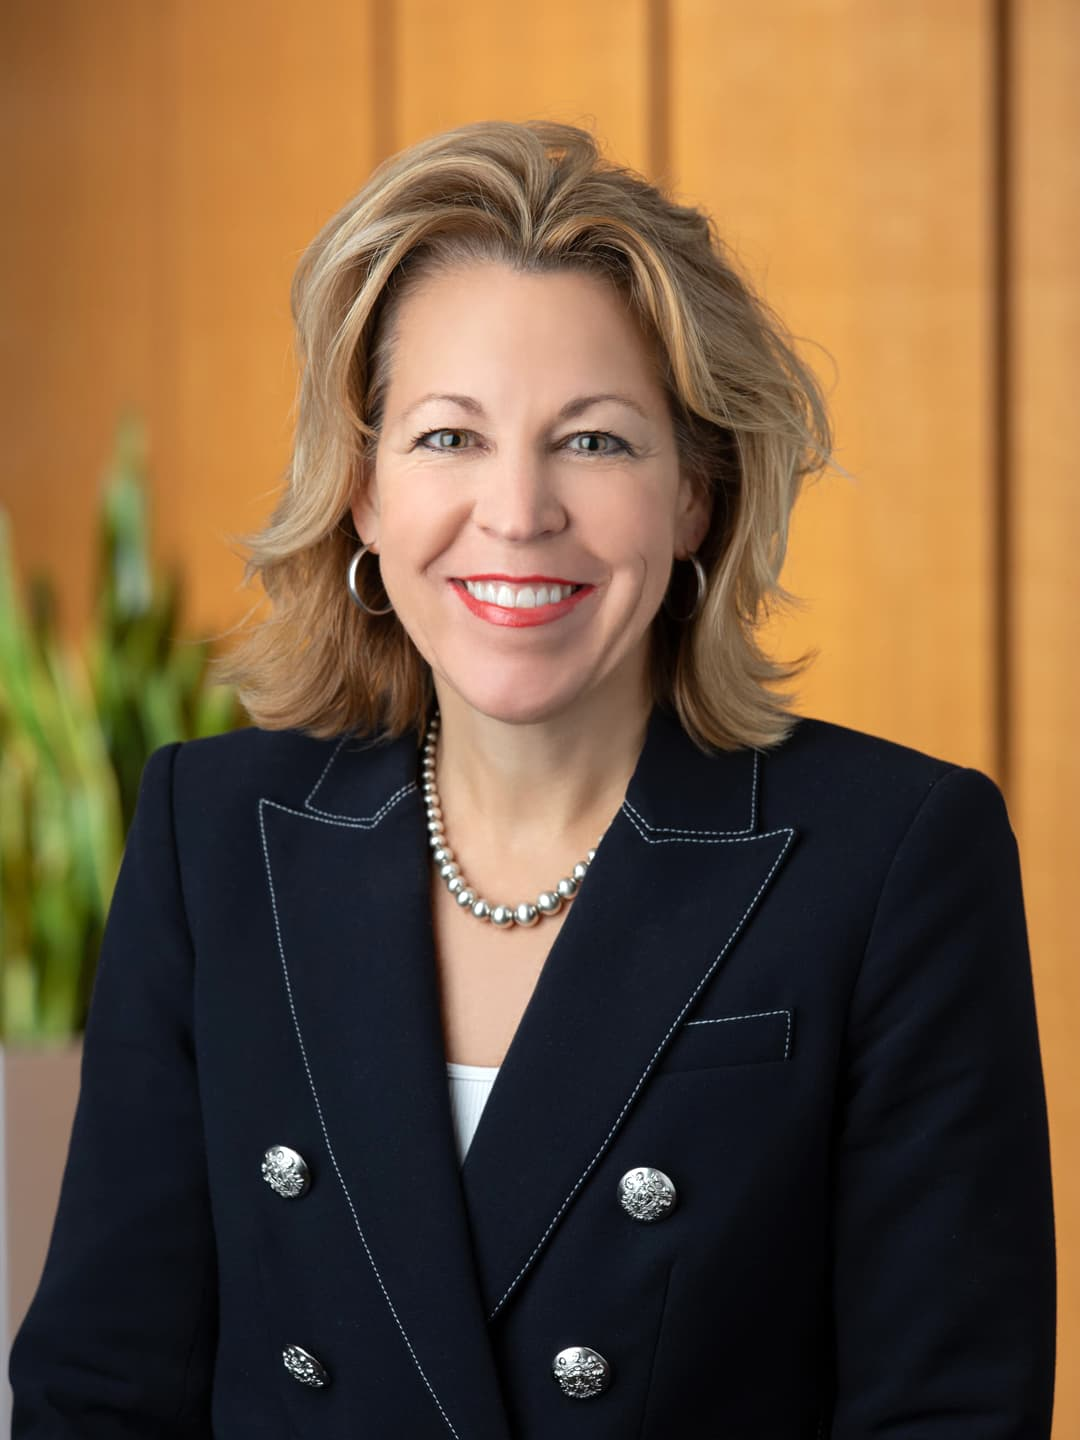 Carolyn J. Burke, Senior Vice President and Chief Financial Officer